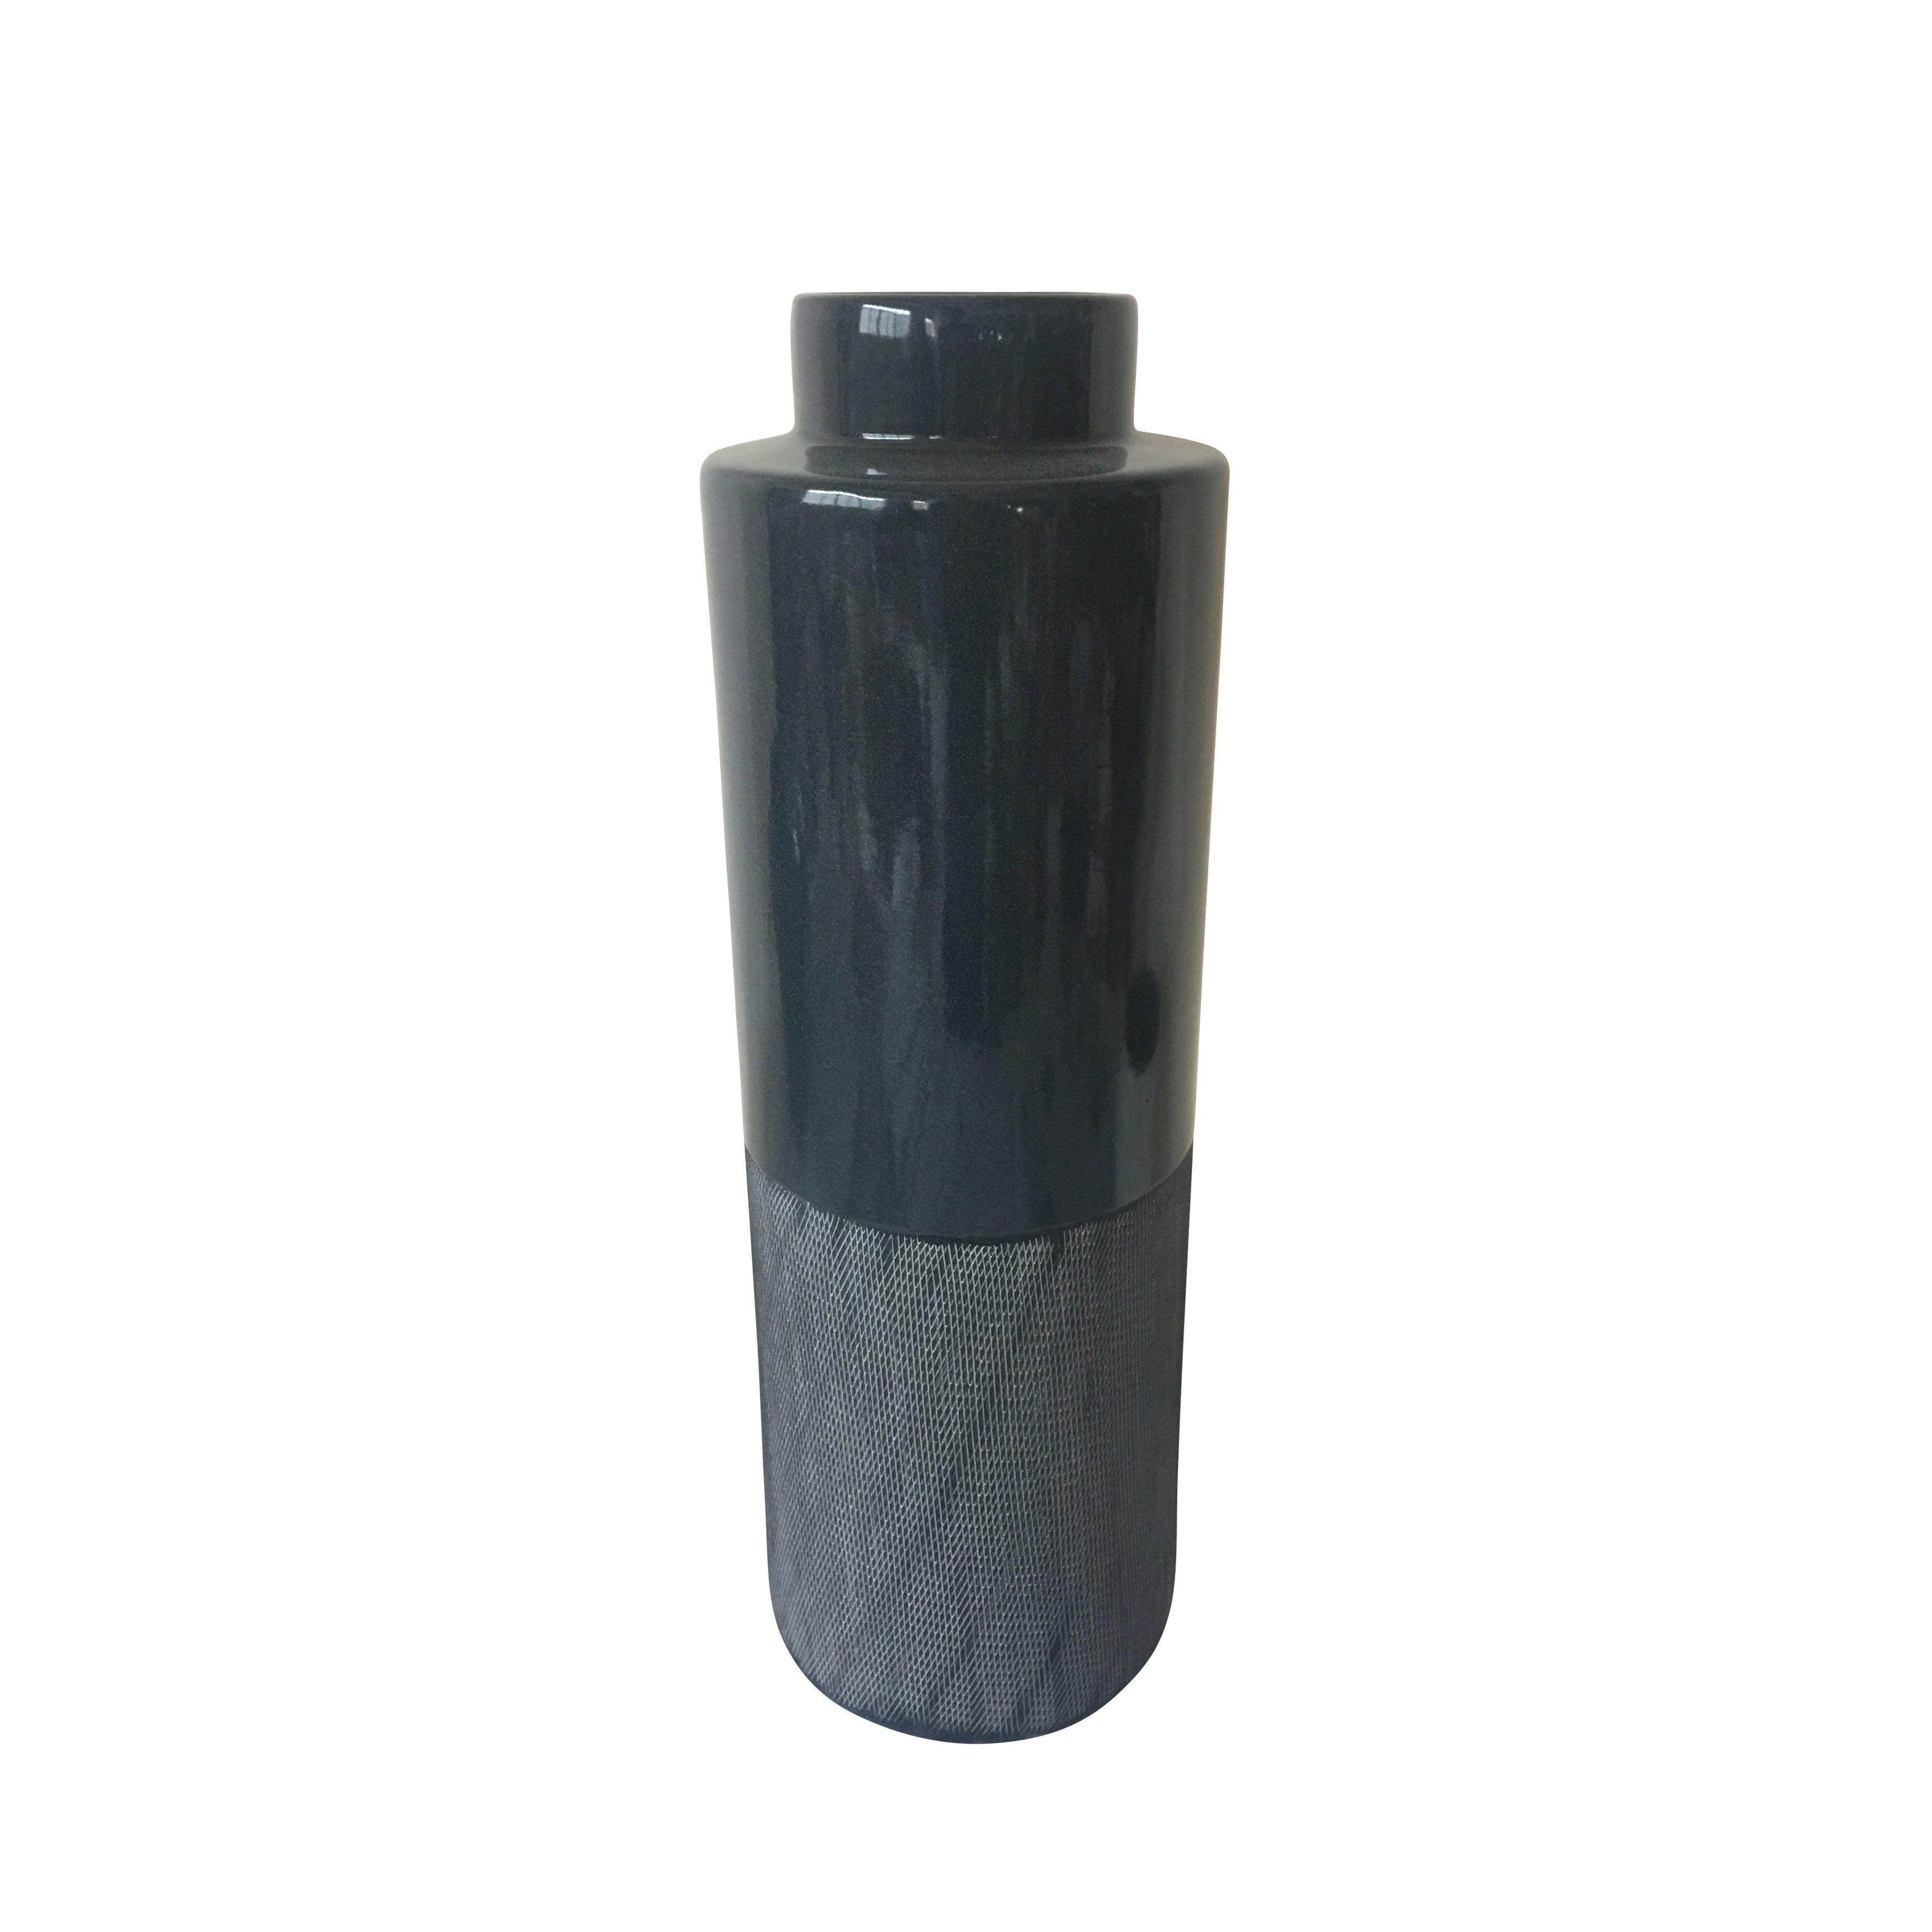 Contemporary Ceramic Vase with Cylindrical Shape, Gray